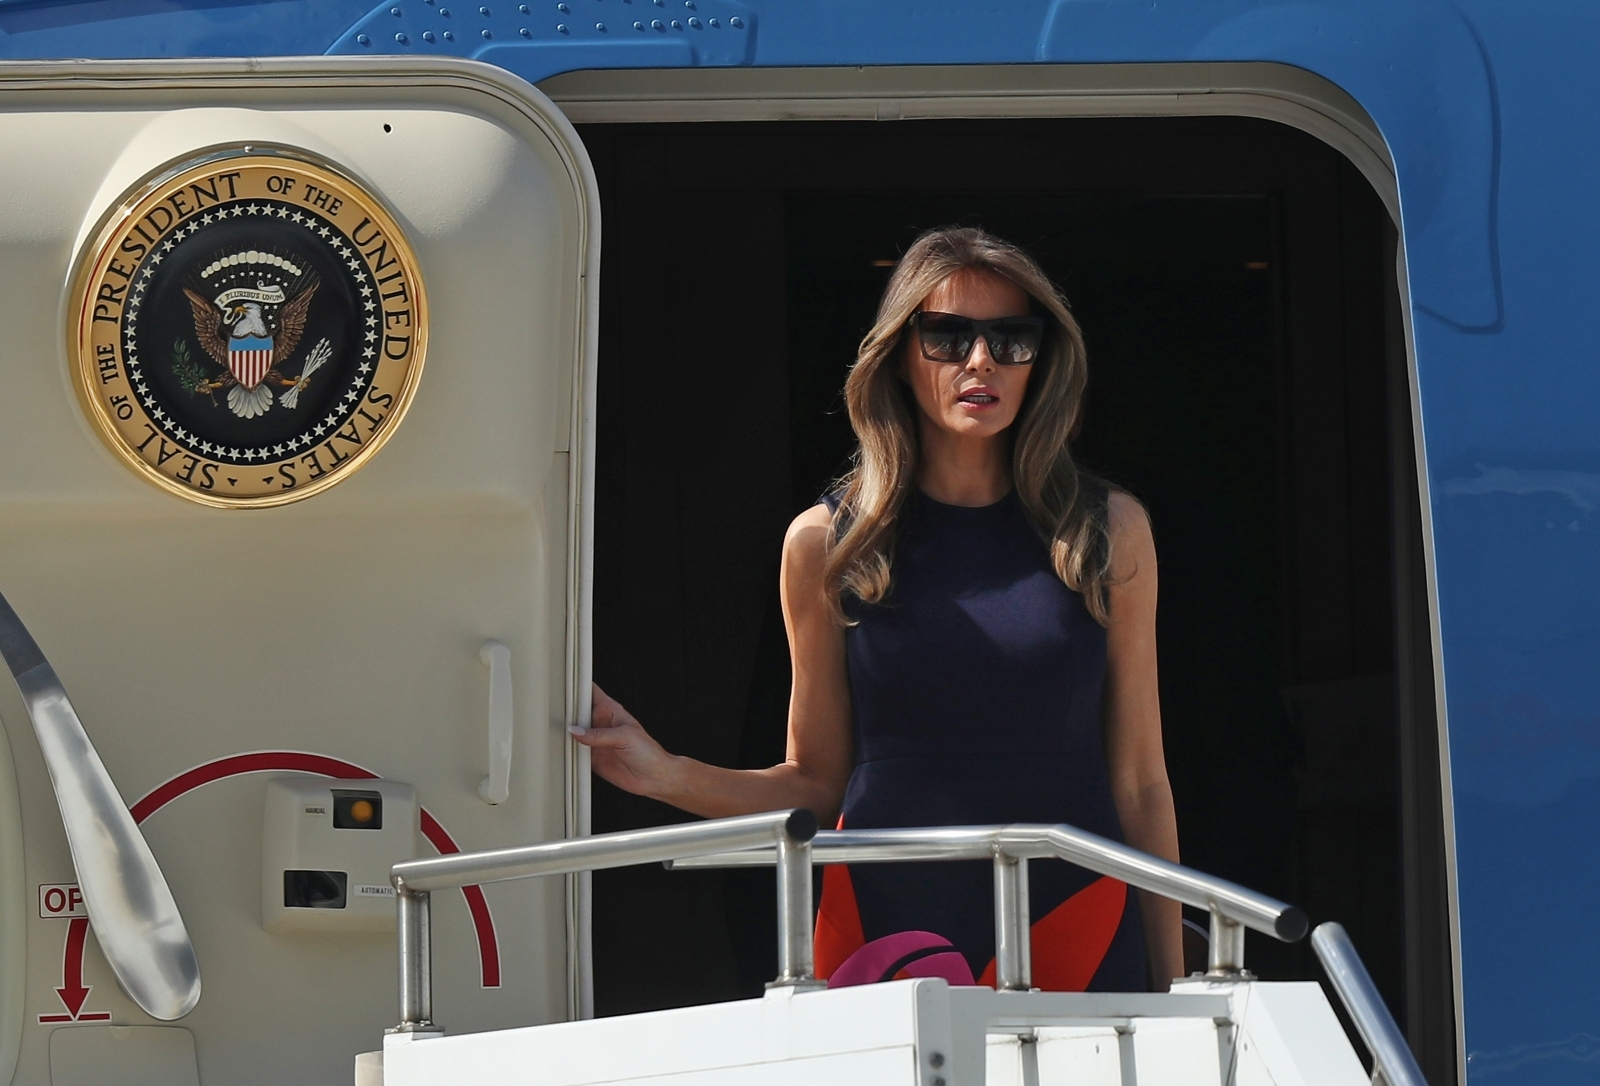 Melania Trump 'furious with her husband' over Stormy Daniels payoff